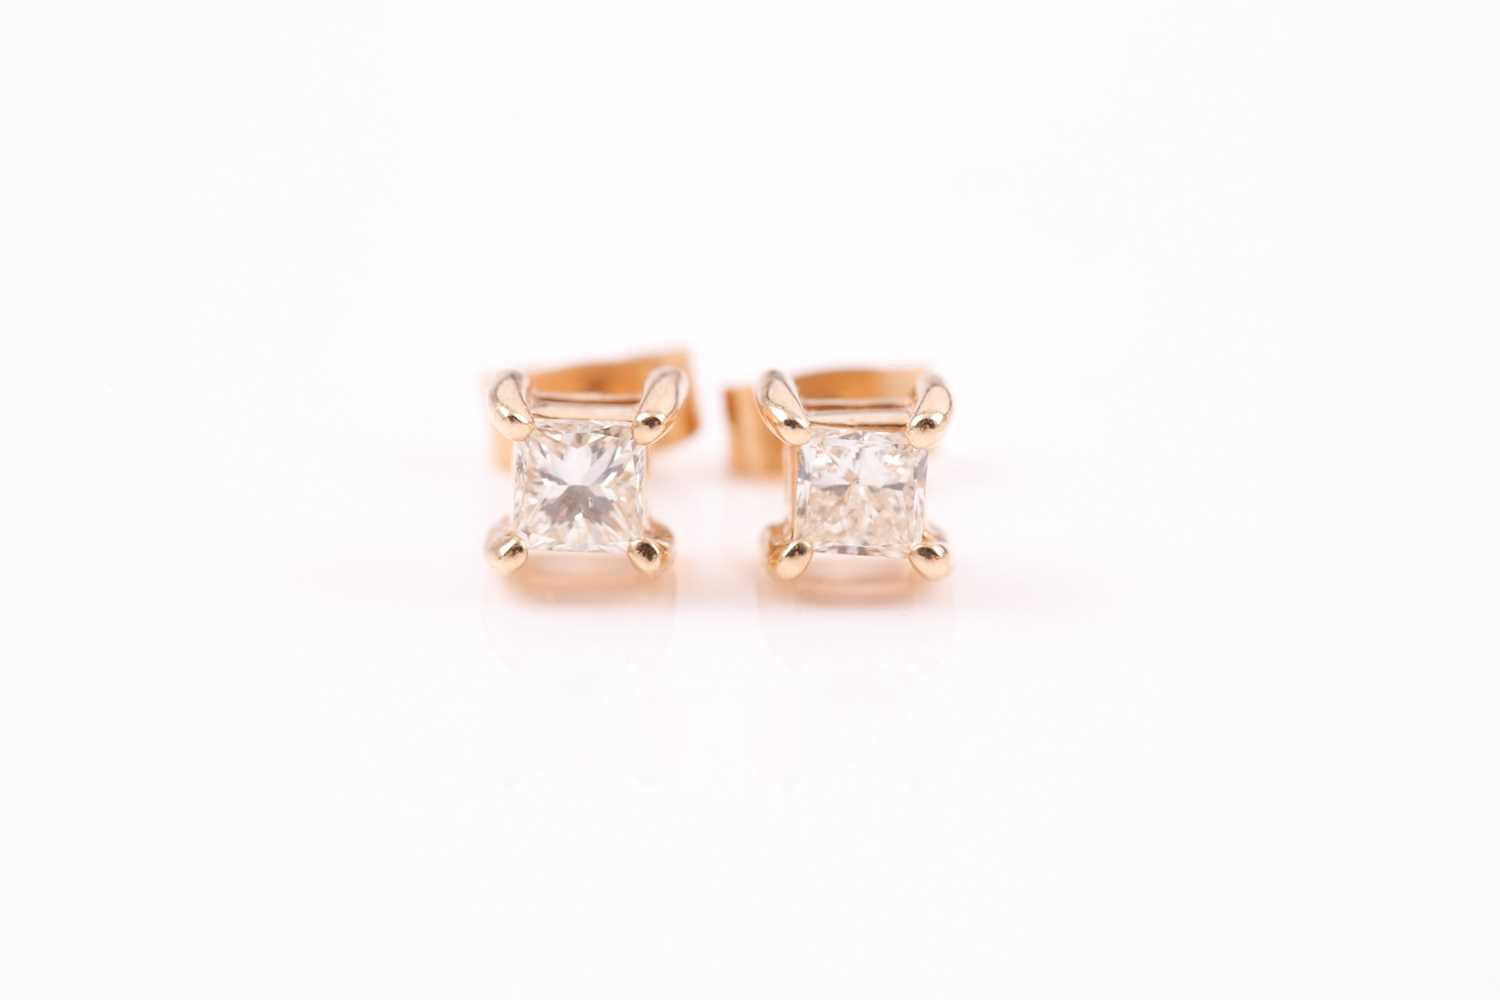 A pair of yellow metal and diamond earrings, set with square-cut diamonds of approximately 0.20